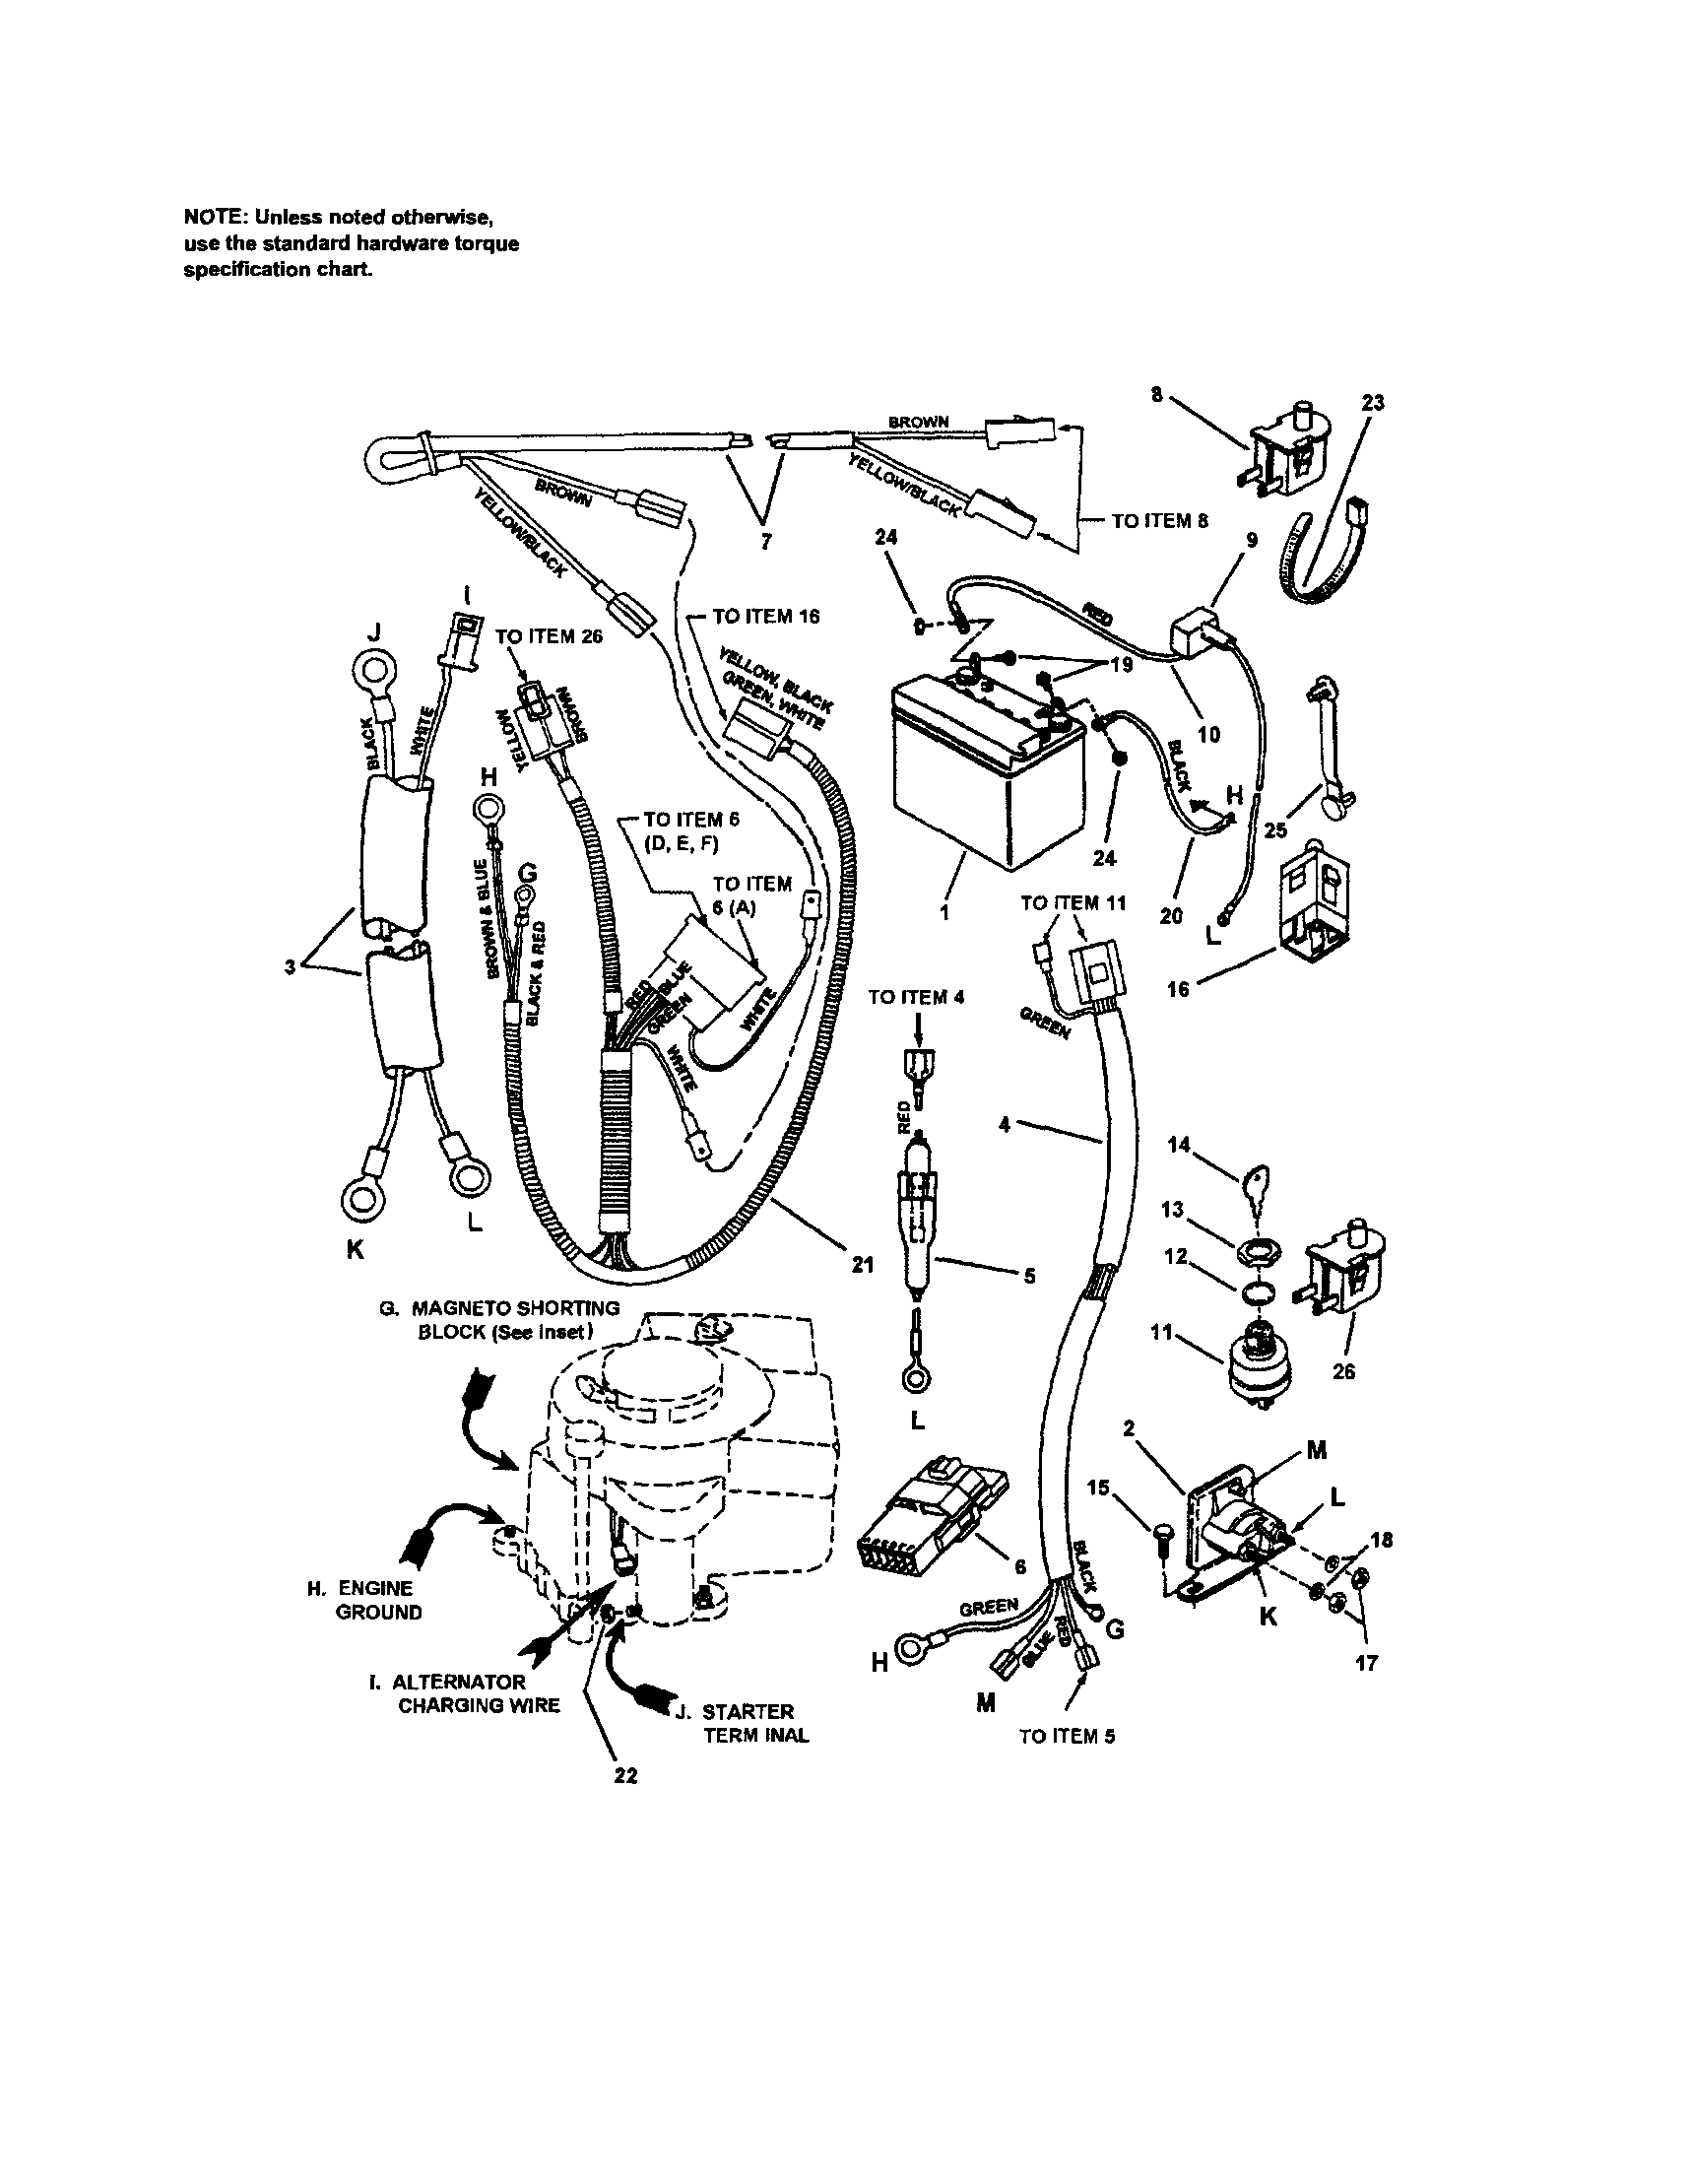 ELECTRICAL-12.5 HP BRIGGS Diagram & Parts List for Model